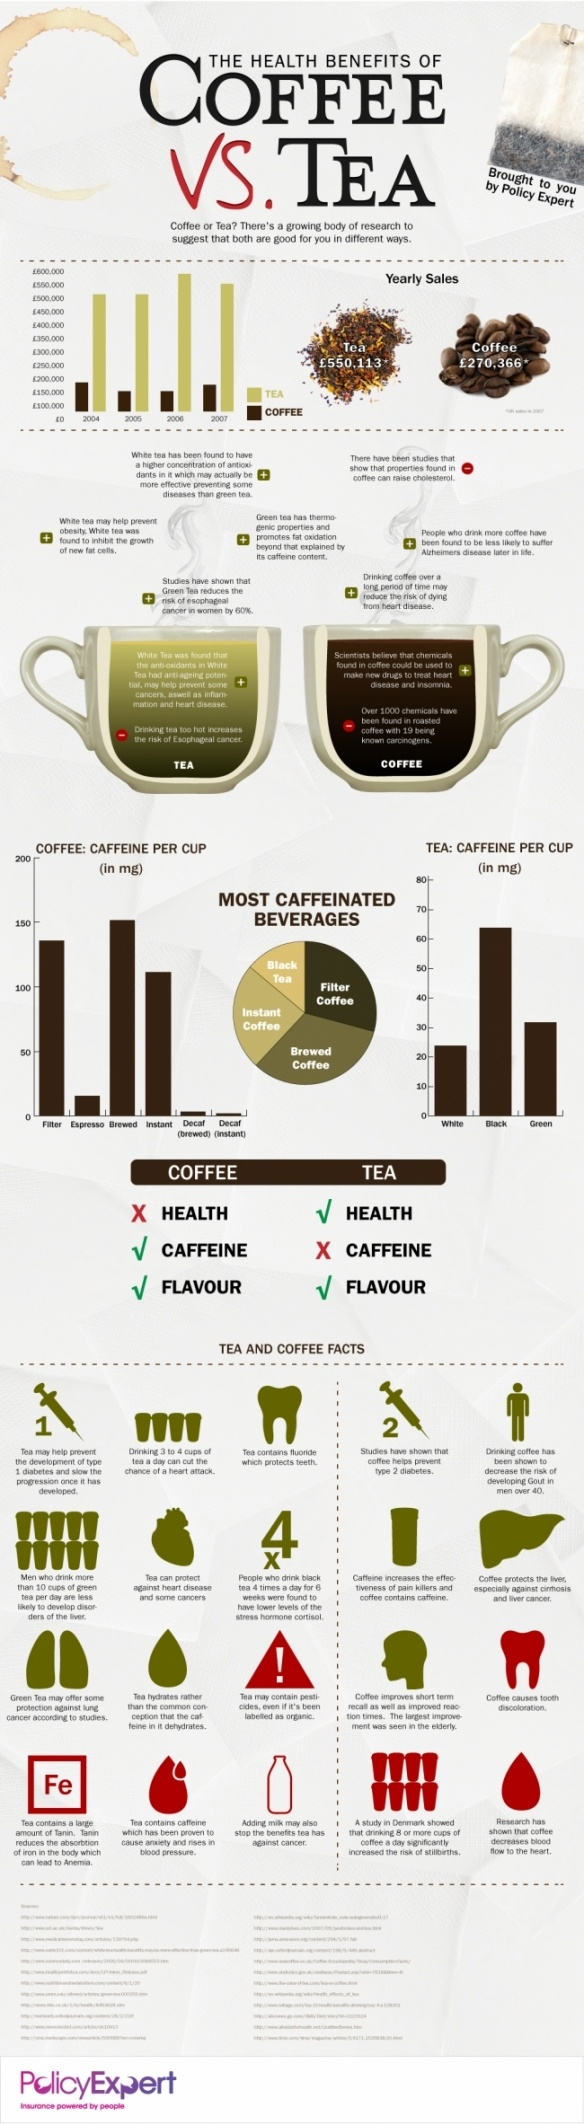 There is an ongoing debate between tea and coffee. Where do you stand?